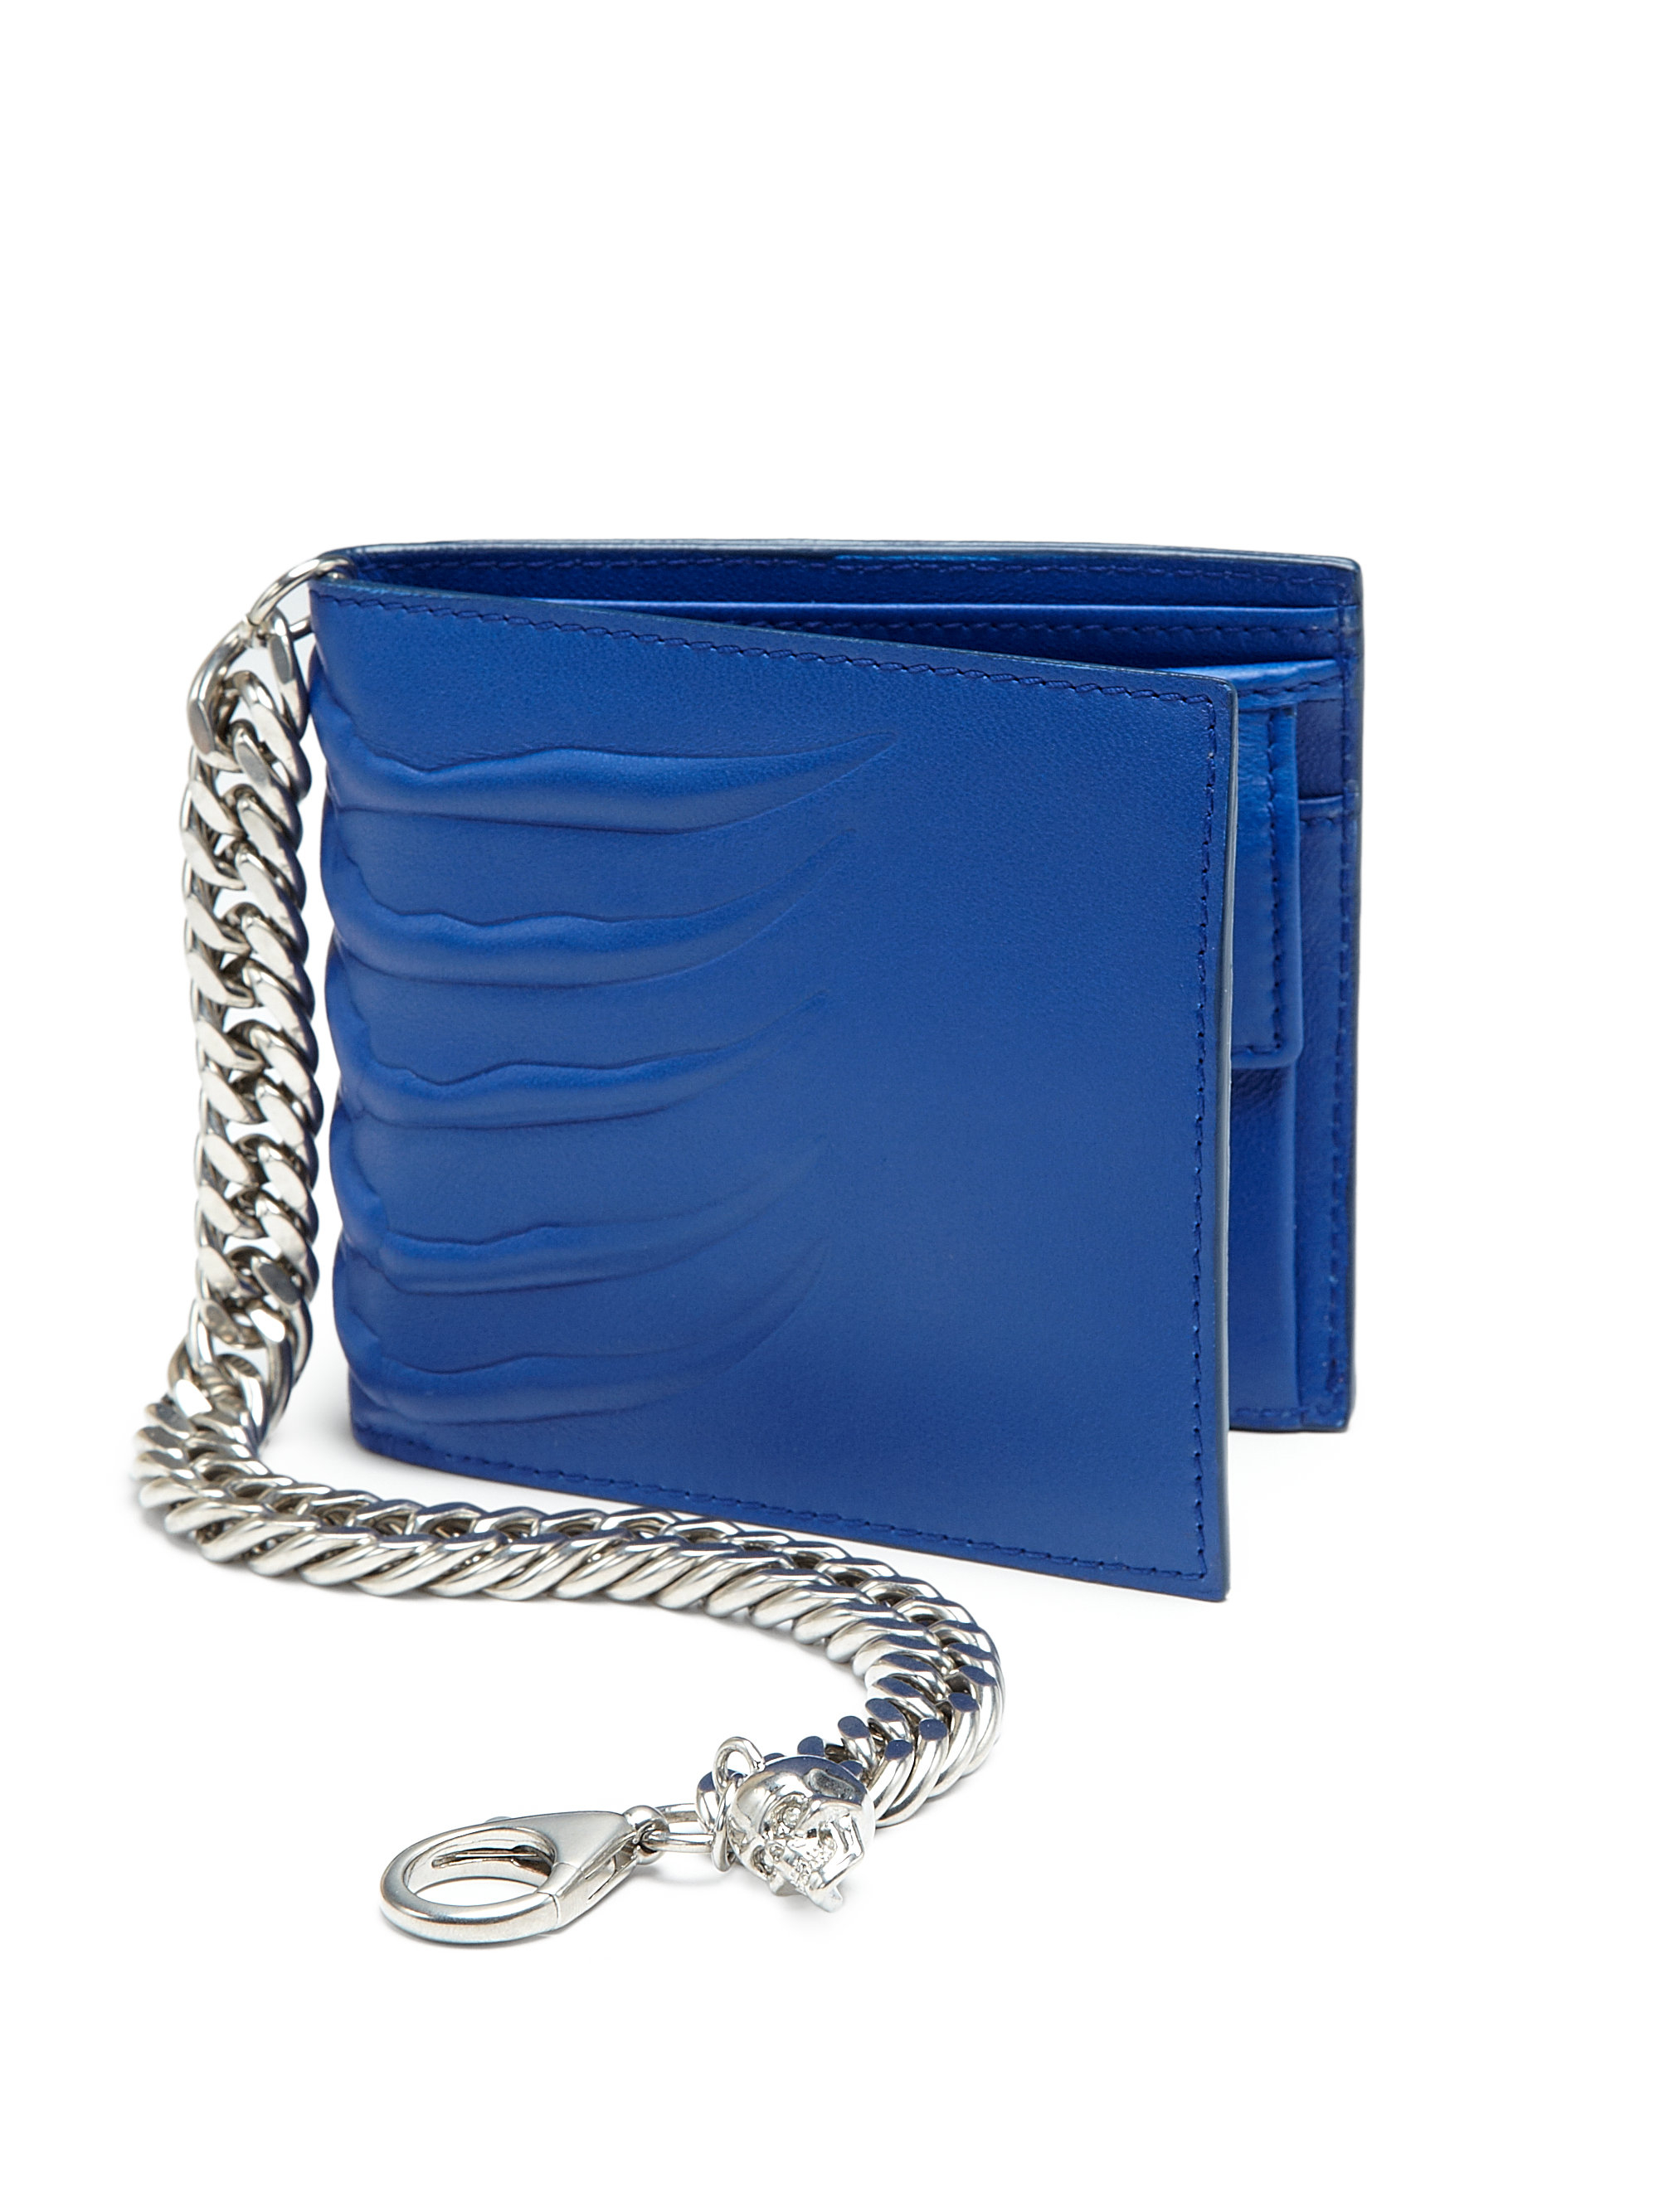 Alexander mcqueen embossed leather chain wallet in blue